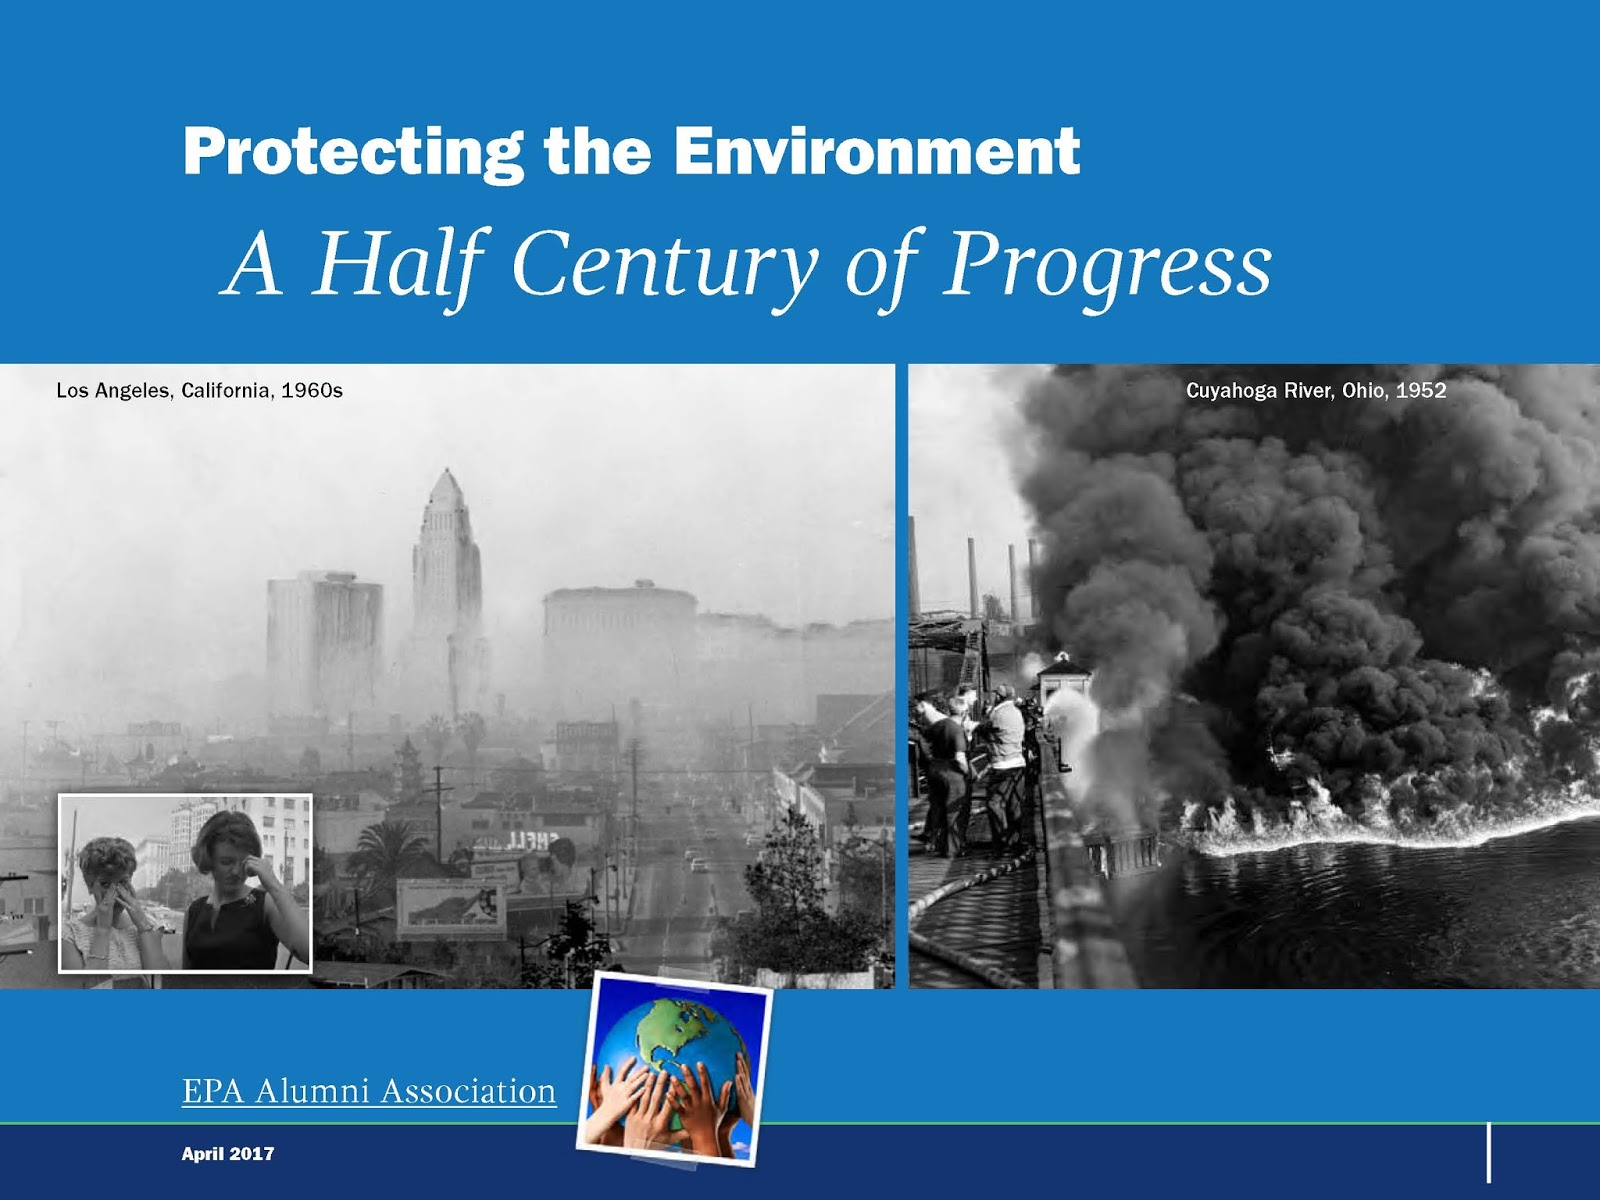 an introduction to the history of the epa Read chapter 1 introduction and historical background: recent and forecasted advances in microbiology, molecular biology, and analytical chemistry have ma.